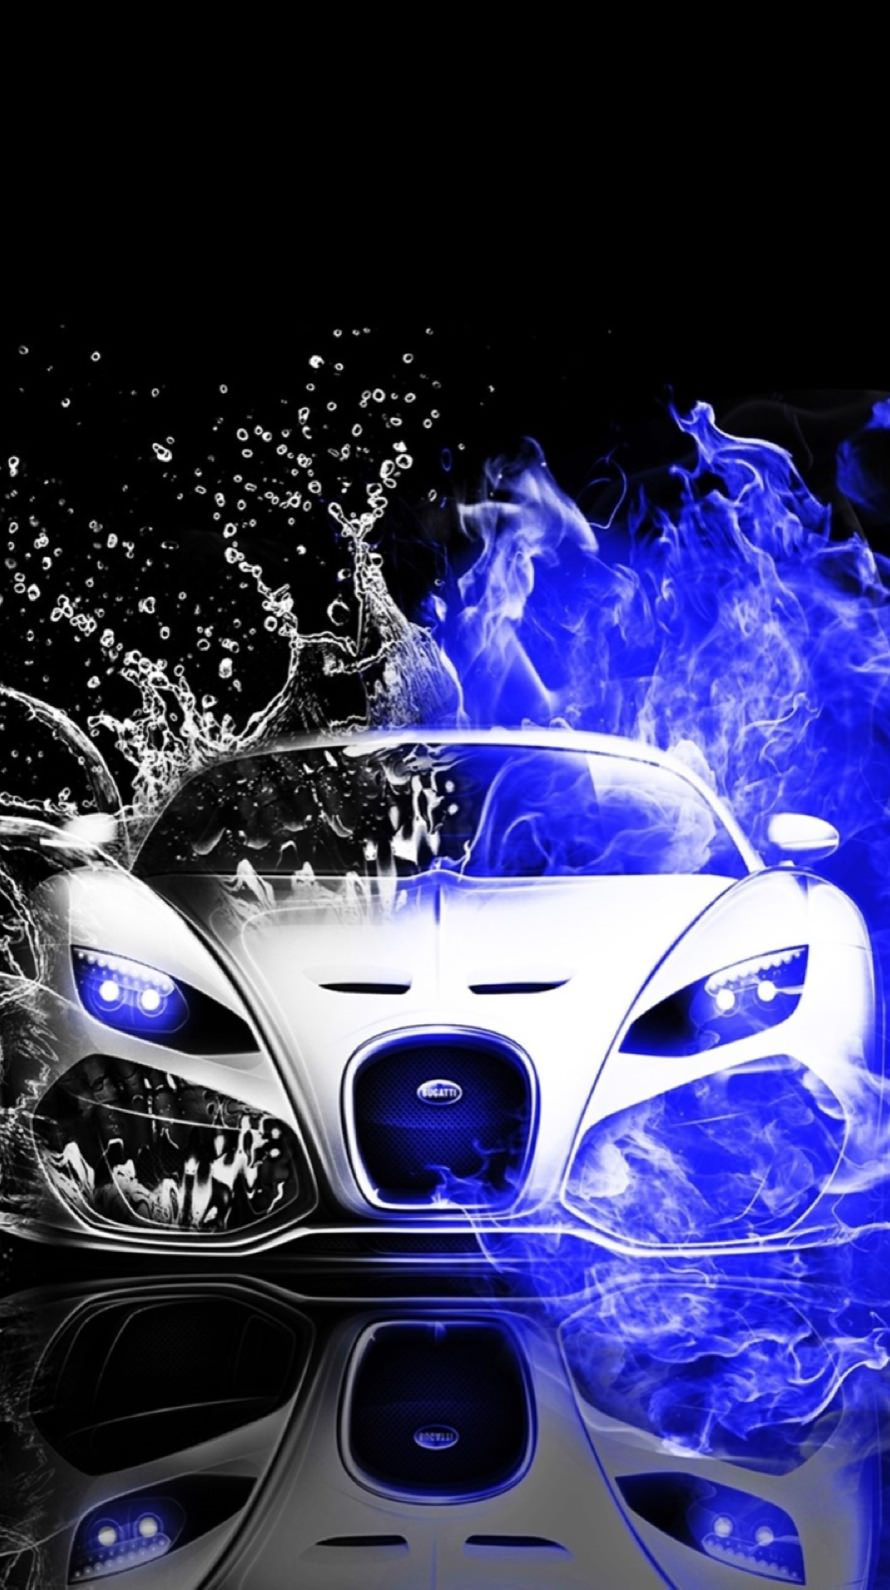 Free Download Cool Cars Blue Water Black And White Wallpapersc Iphone6 890x1590 For Your Desktop Mobile Tablet Explore 50 Cool Iphone 6 Plus Wallpapers Iphone 6s Plus Wallpaper Hd